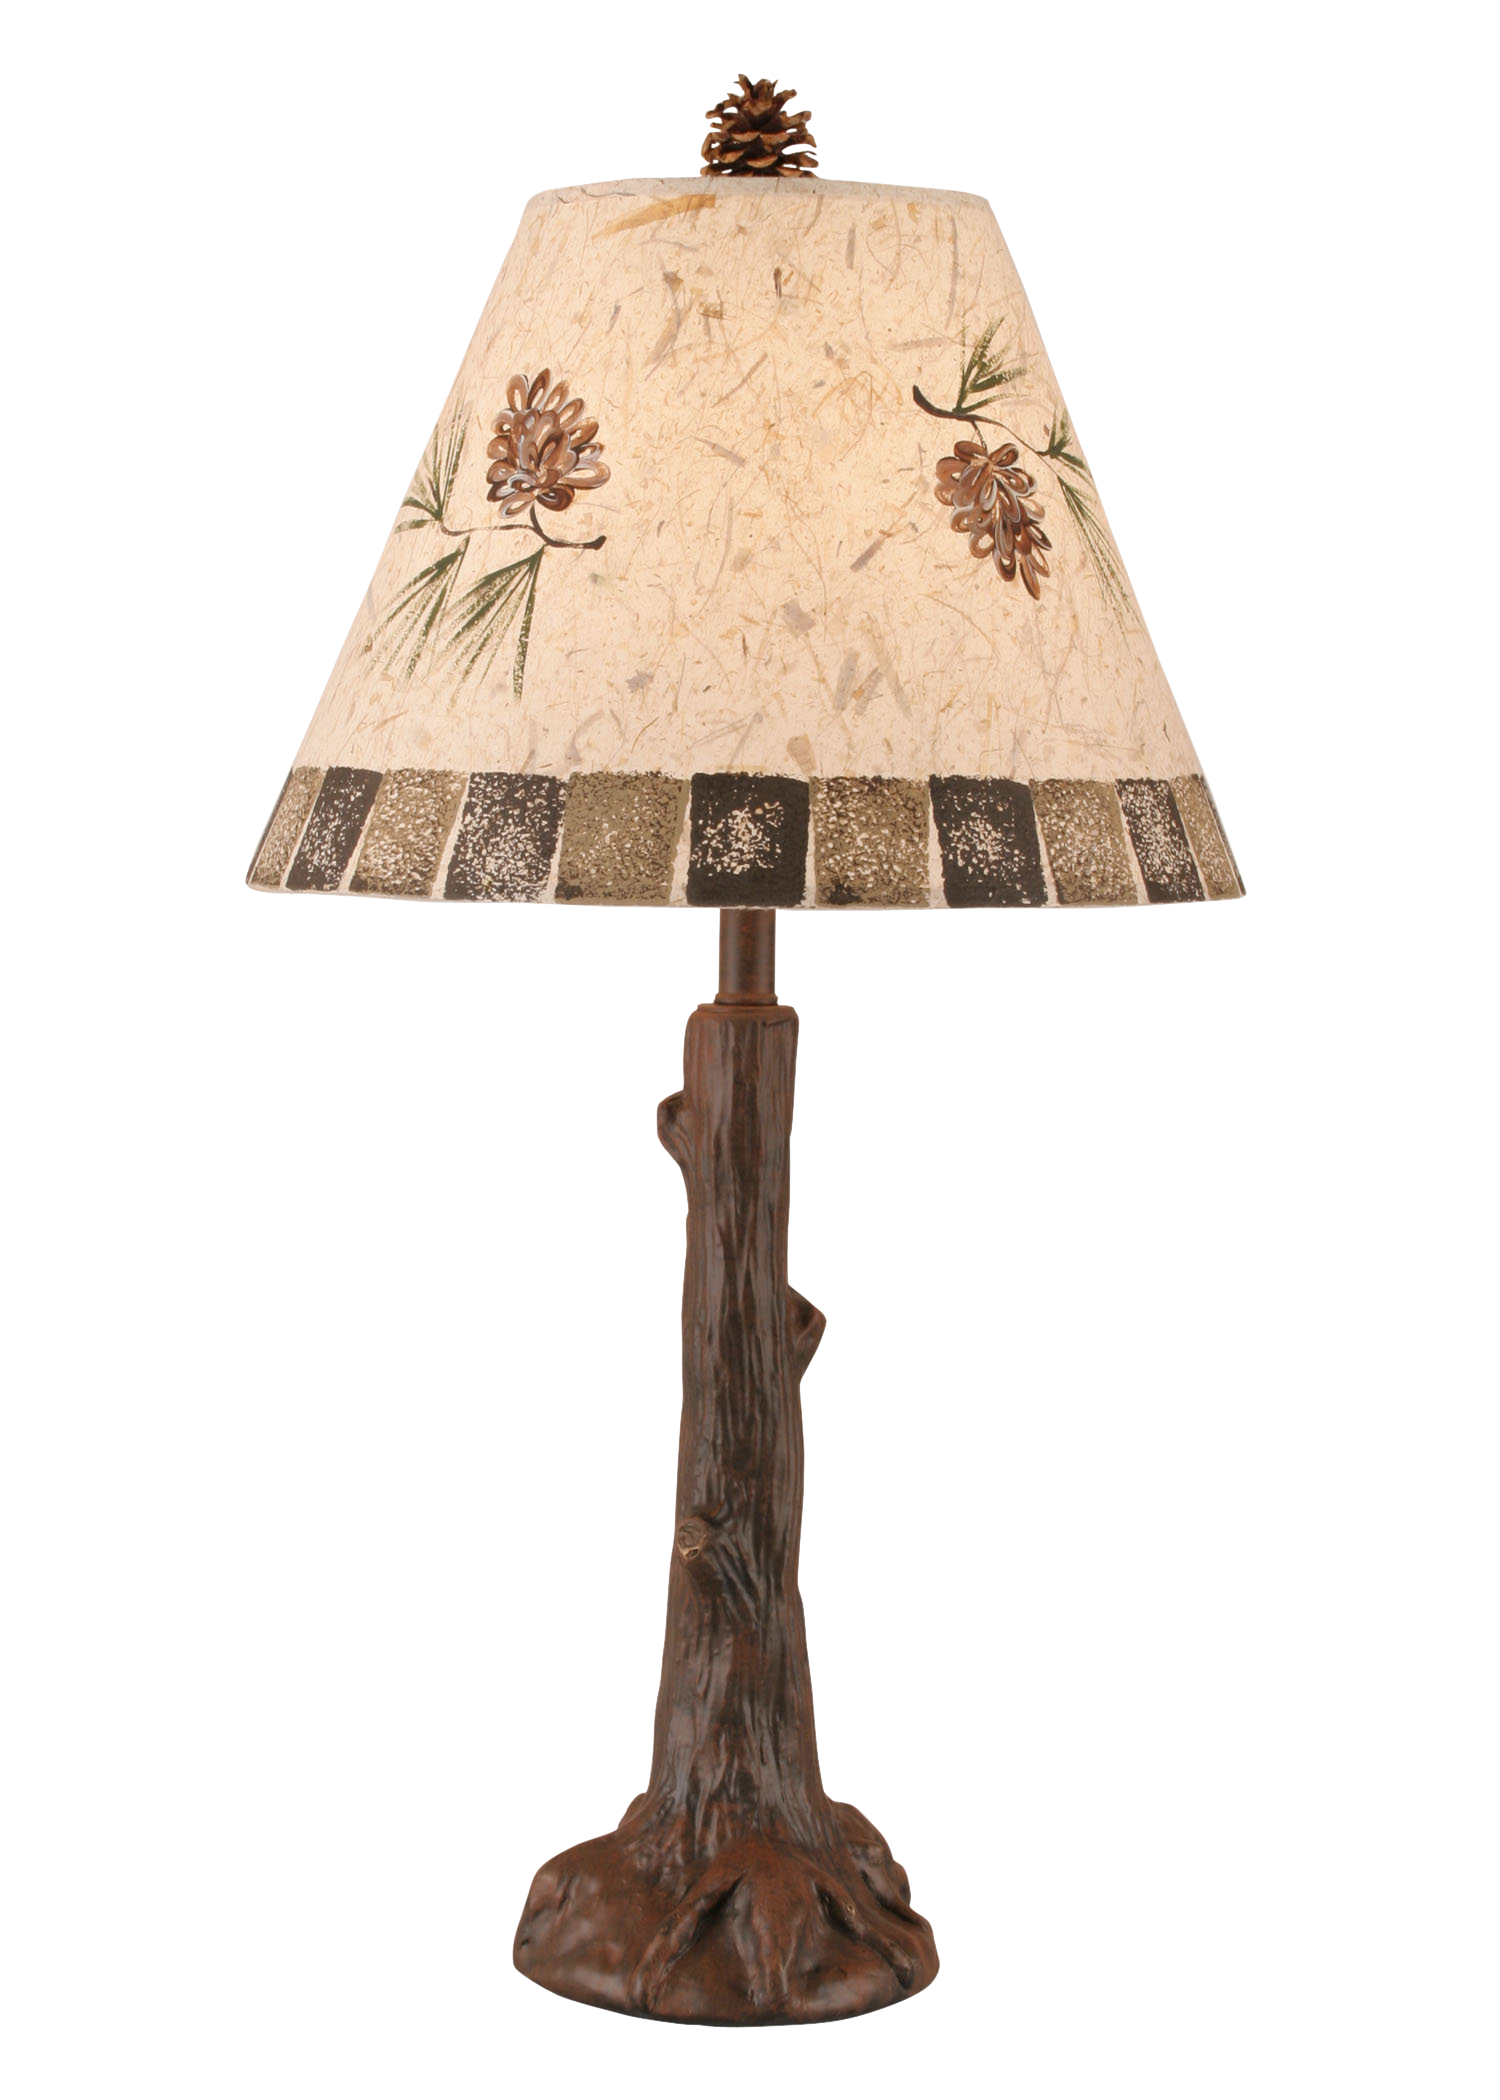 12R32C - Tree Trunk Pine Cone Shade - 27 Inch Rustic Table Lamp - ThunderHorseCabin.com